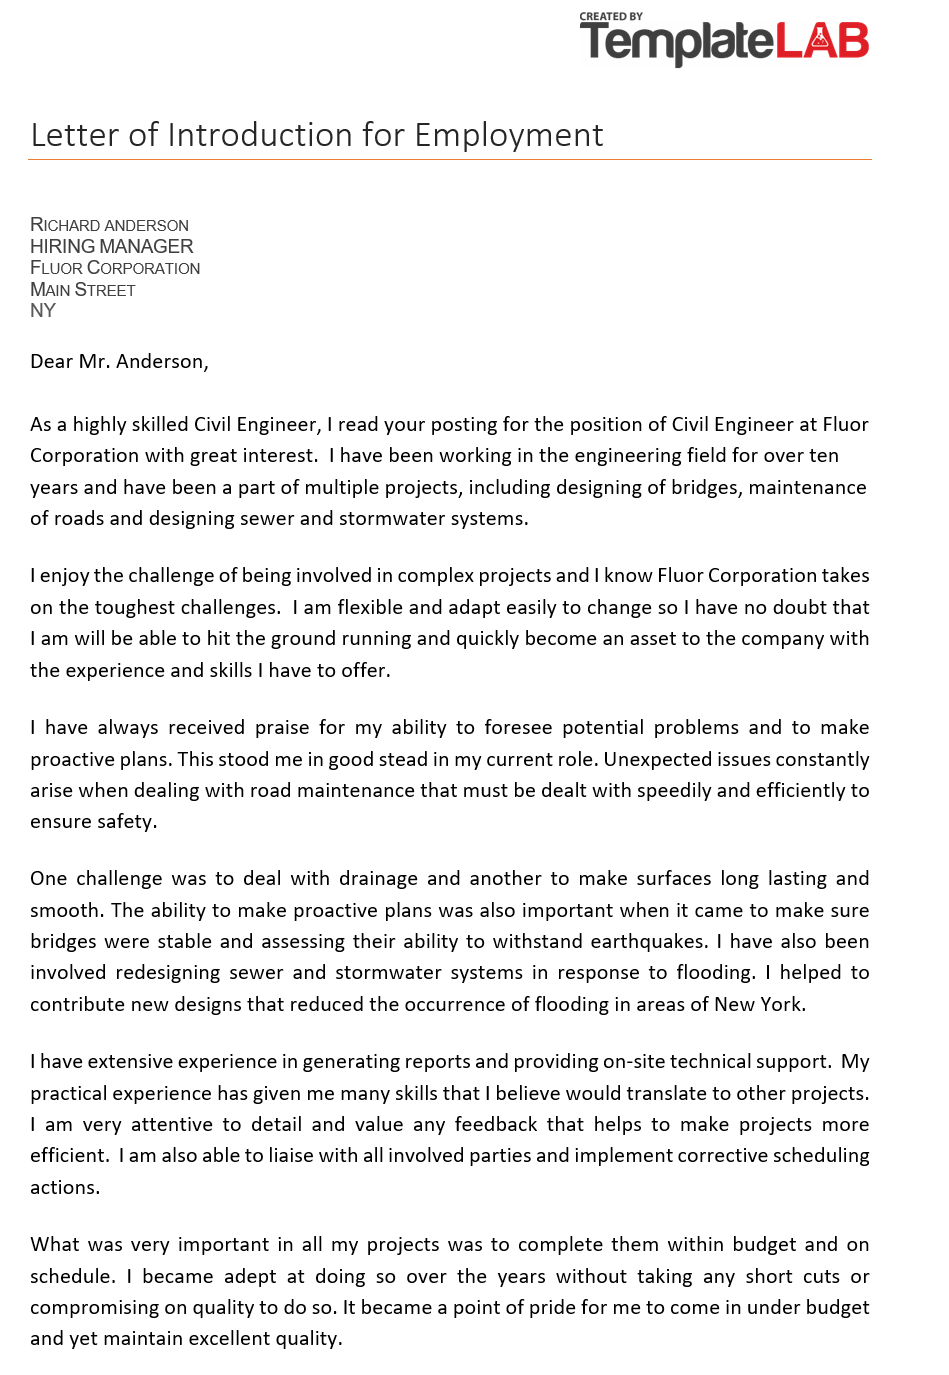 Free Letter of Introduction for Employment 2